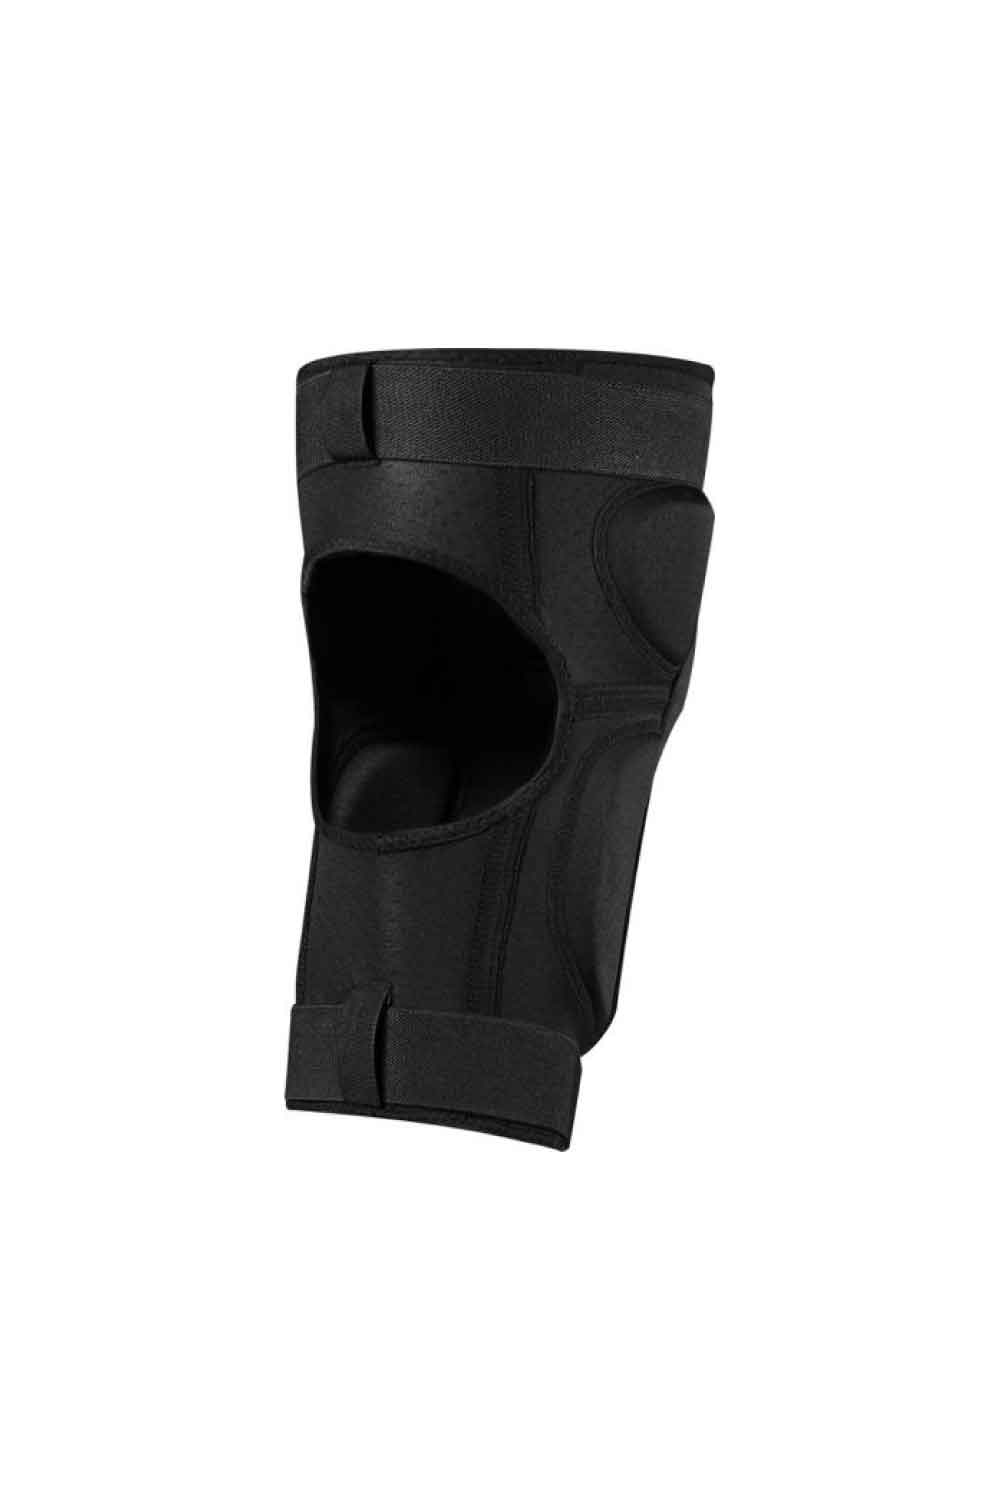 FOX Racing Launch D30 MTB Bike Knee Pads Black